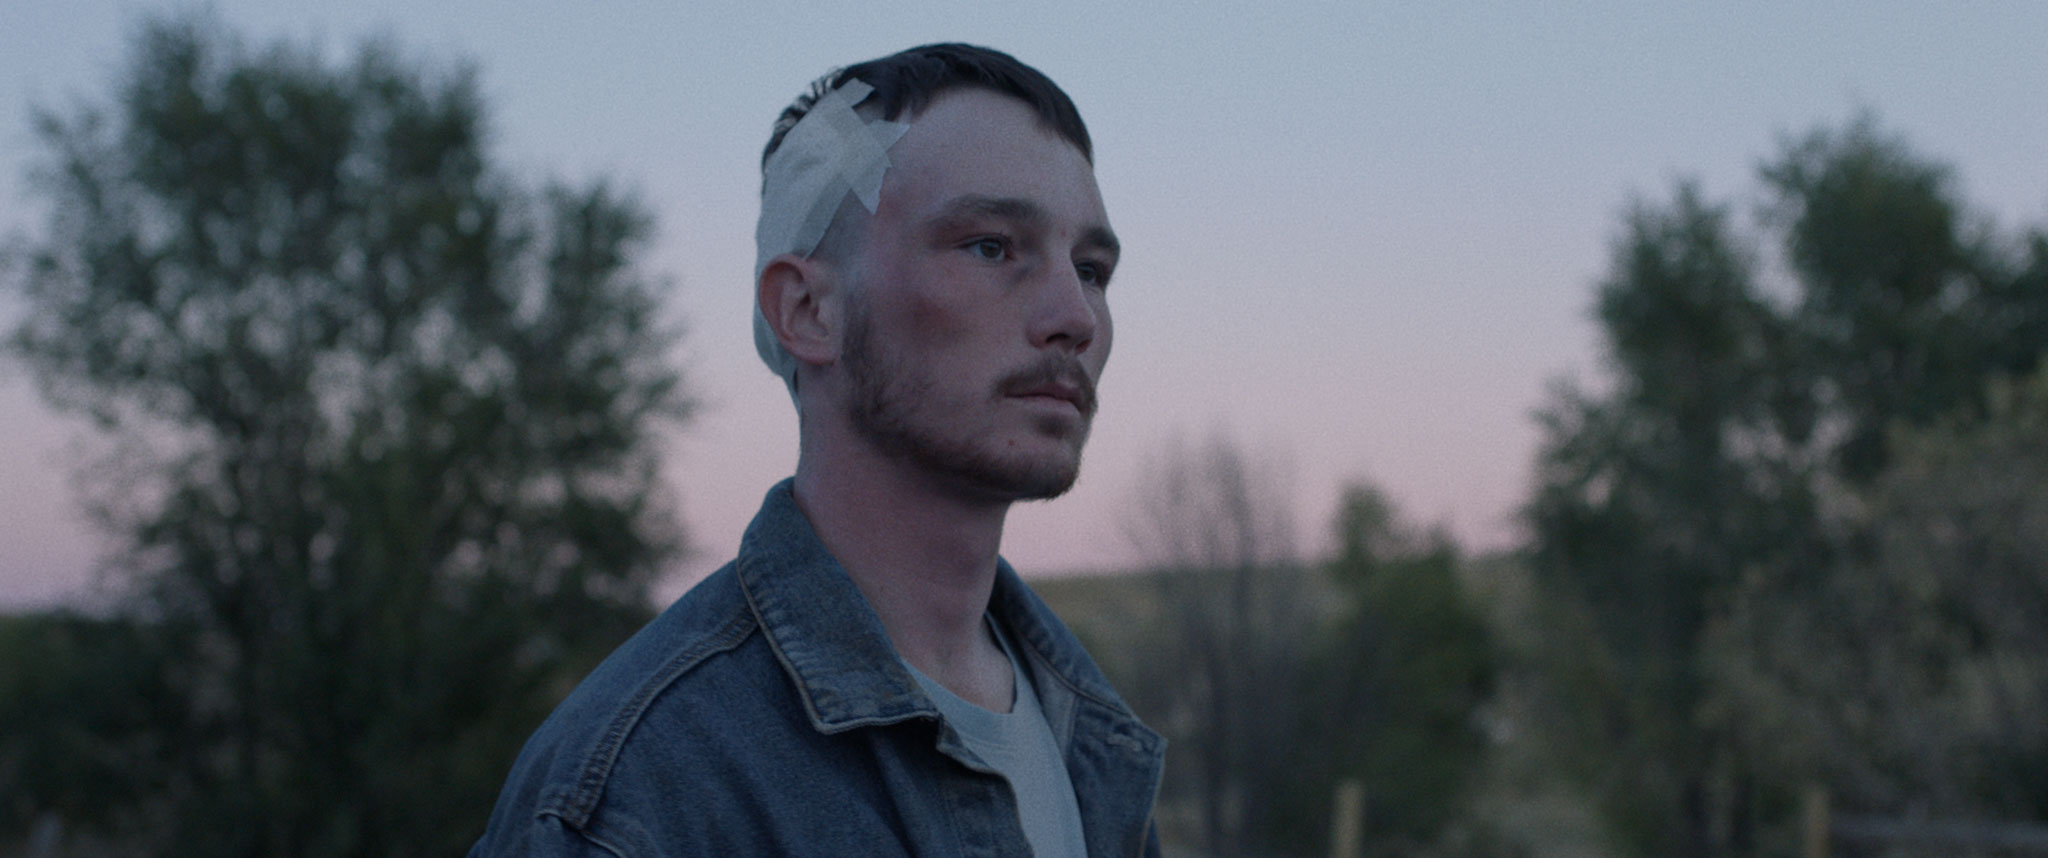 8. The Rider (dir. Chloé Zhao) - After a riding accident leaves him unable to compete on the rodeo circuit, a young cowboy searches for a new purpose.